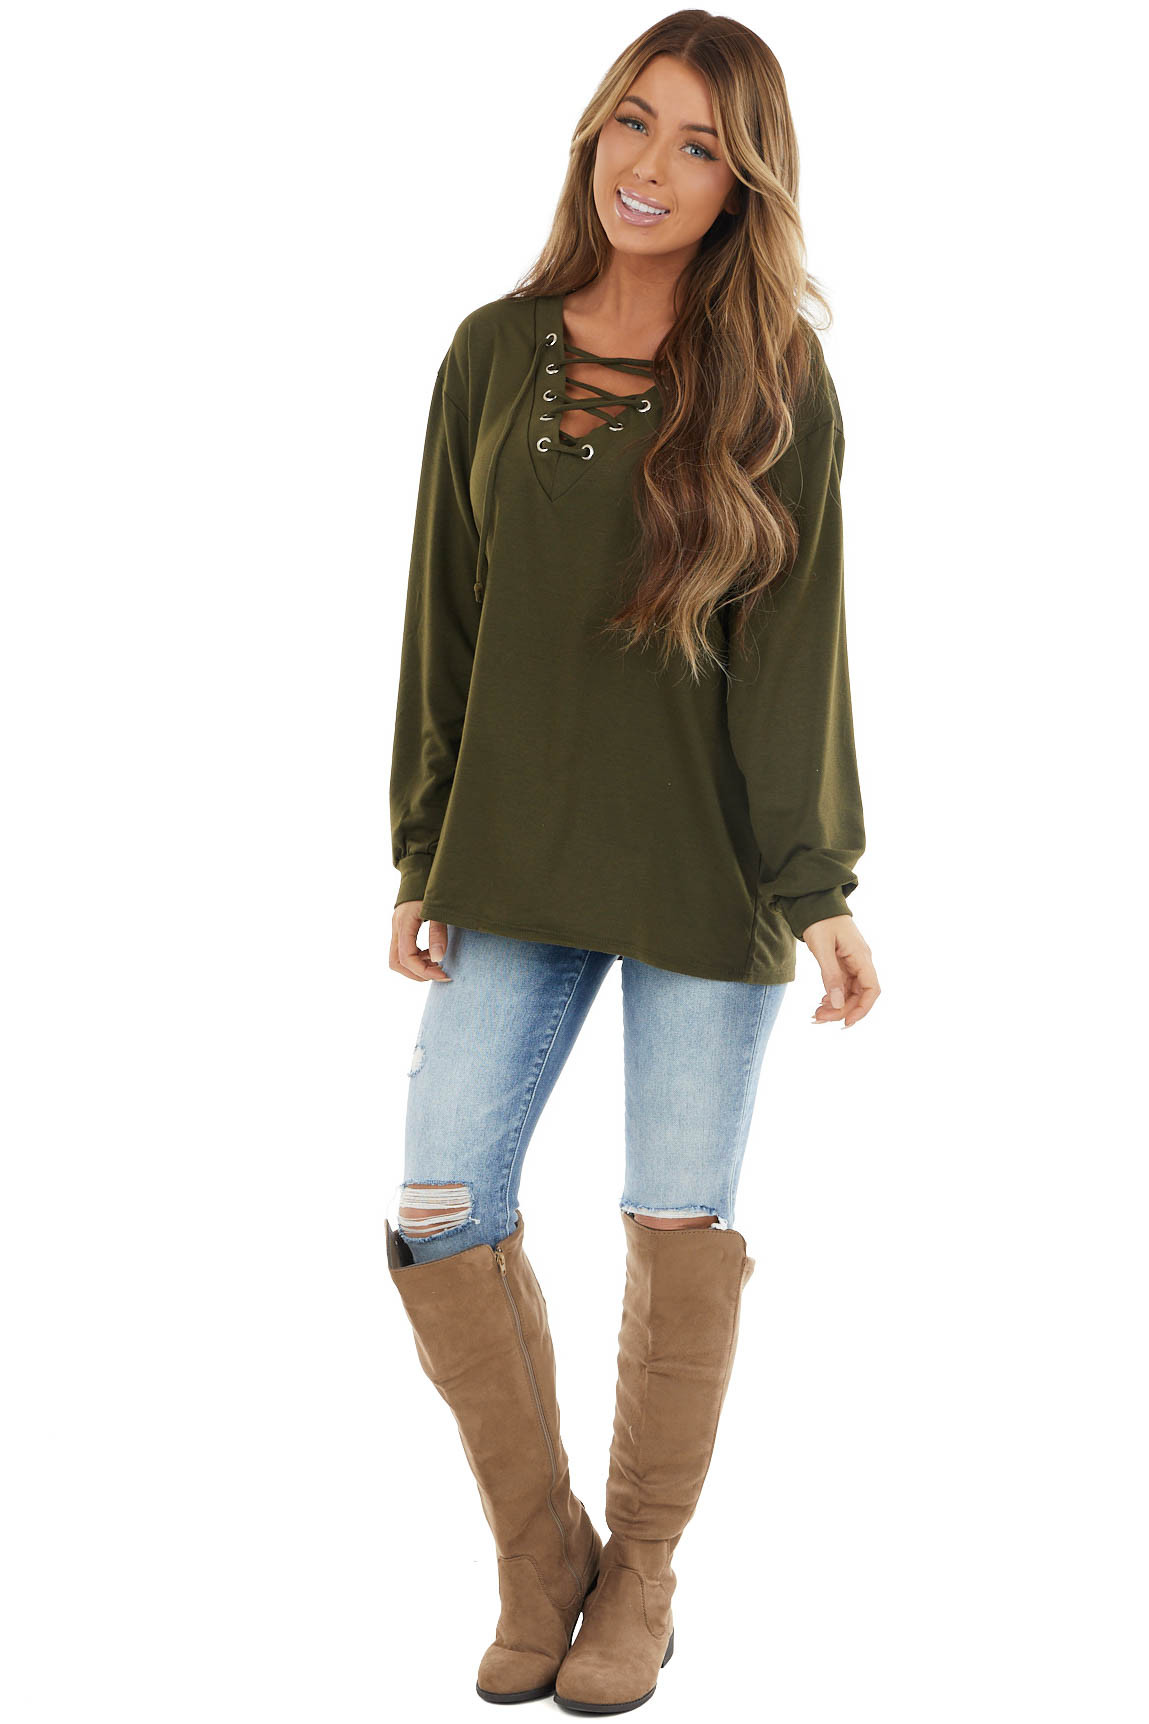 Olive Green Long Sleeve Knit Top with Lace Up V Neck Detail